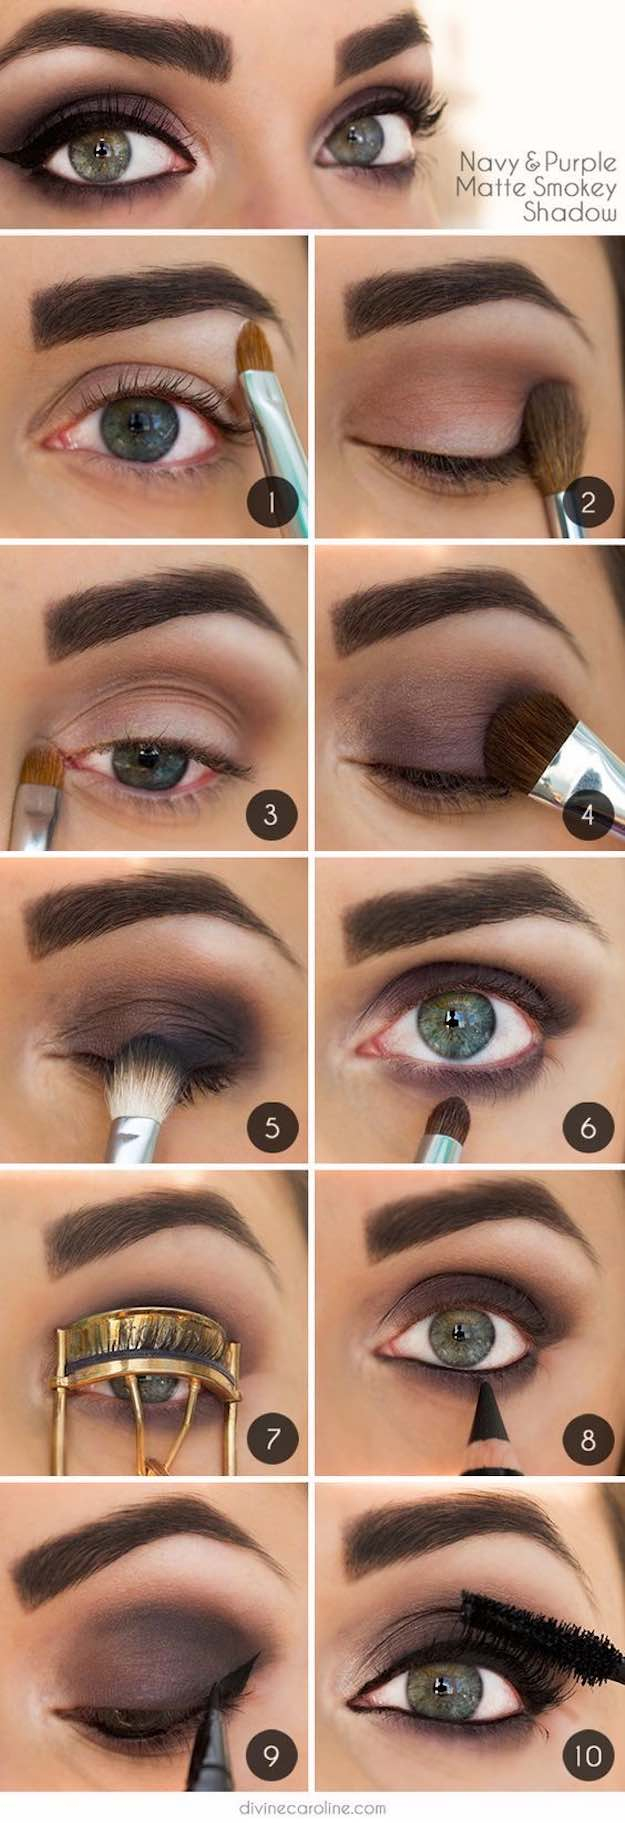 Natural Smokey Eye Makeup 50 Perfect Makeup Tutorials For Green Eyes The Goddess